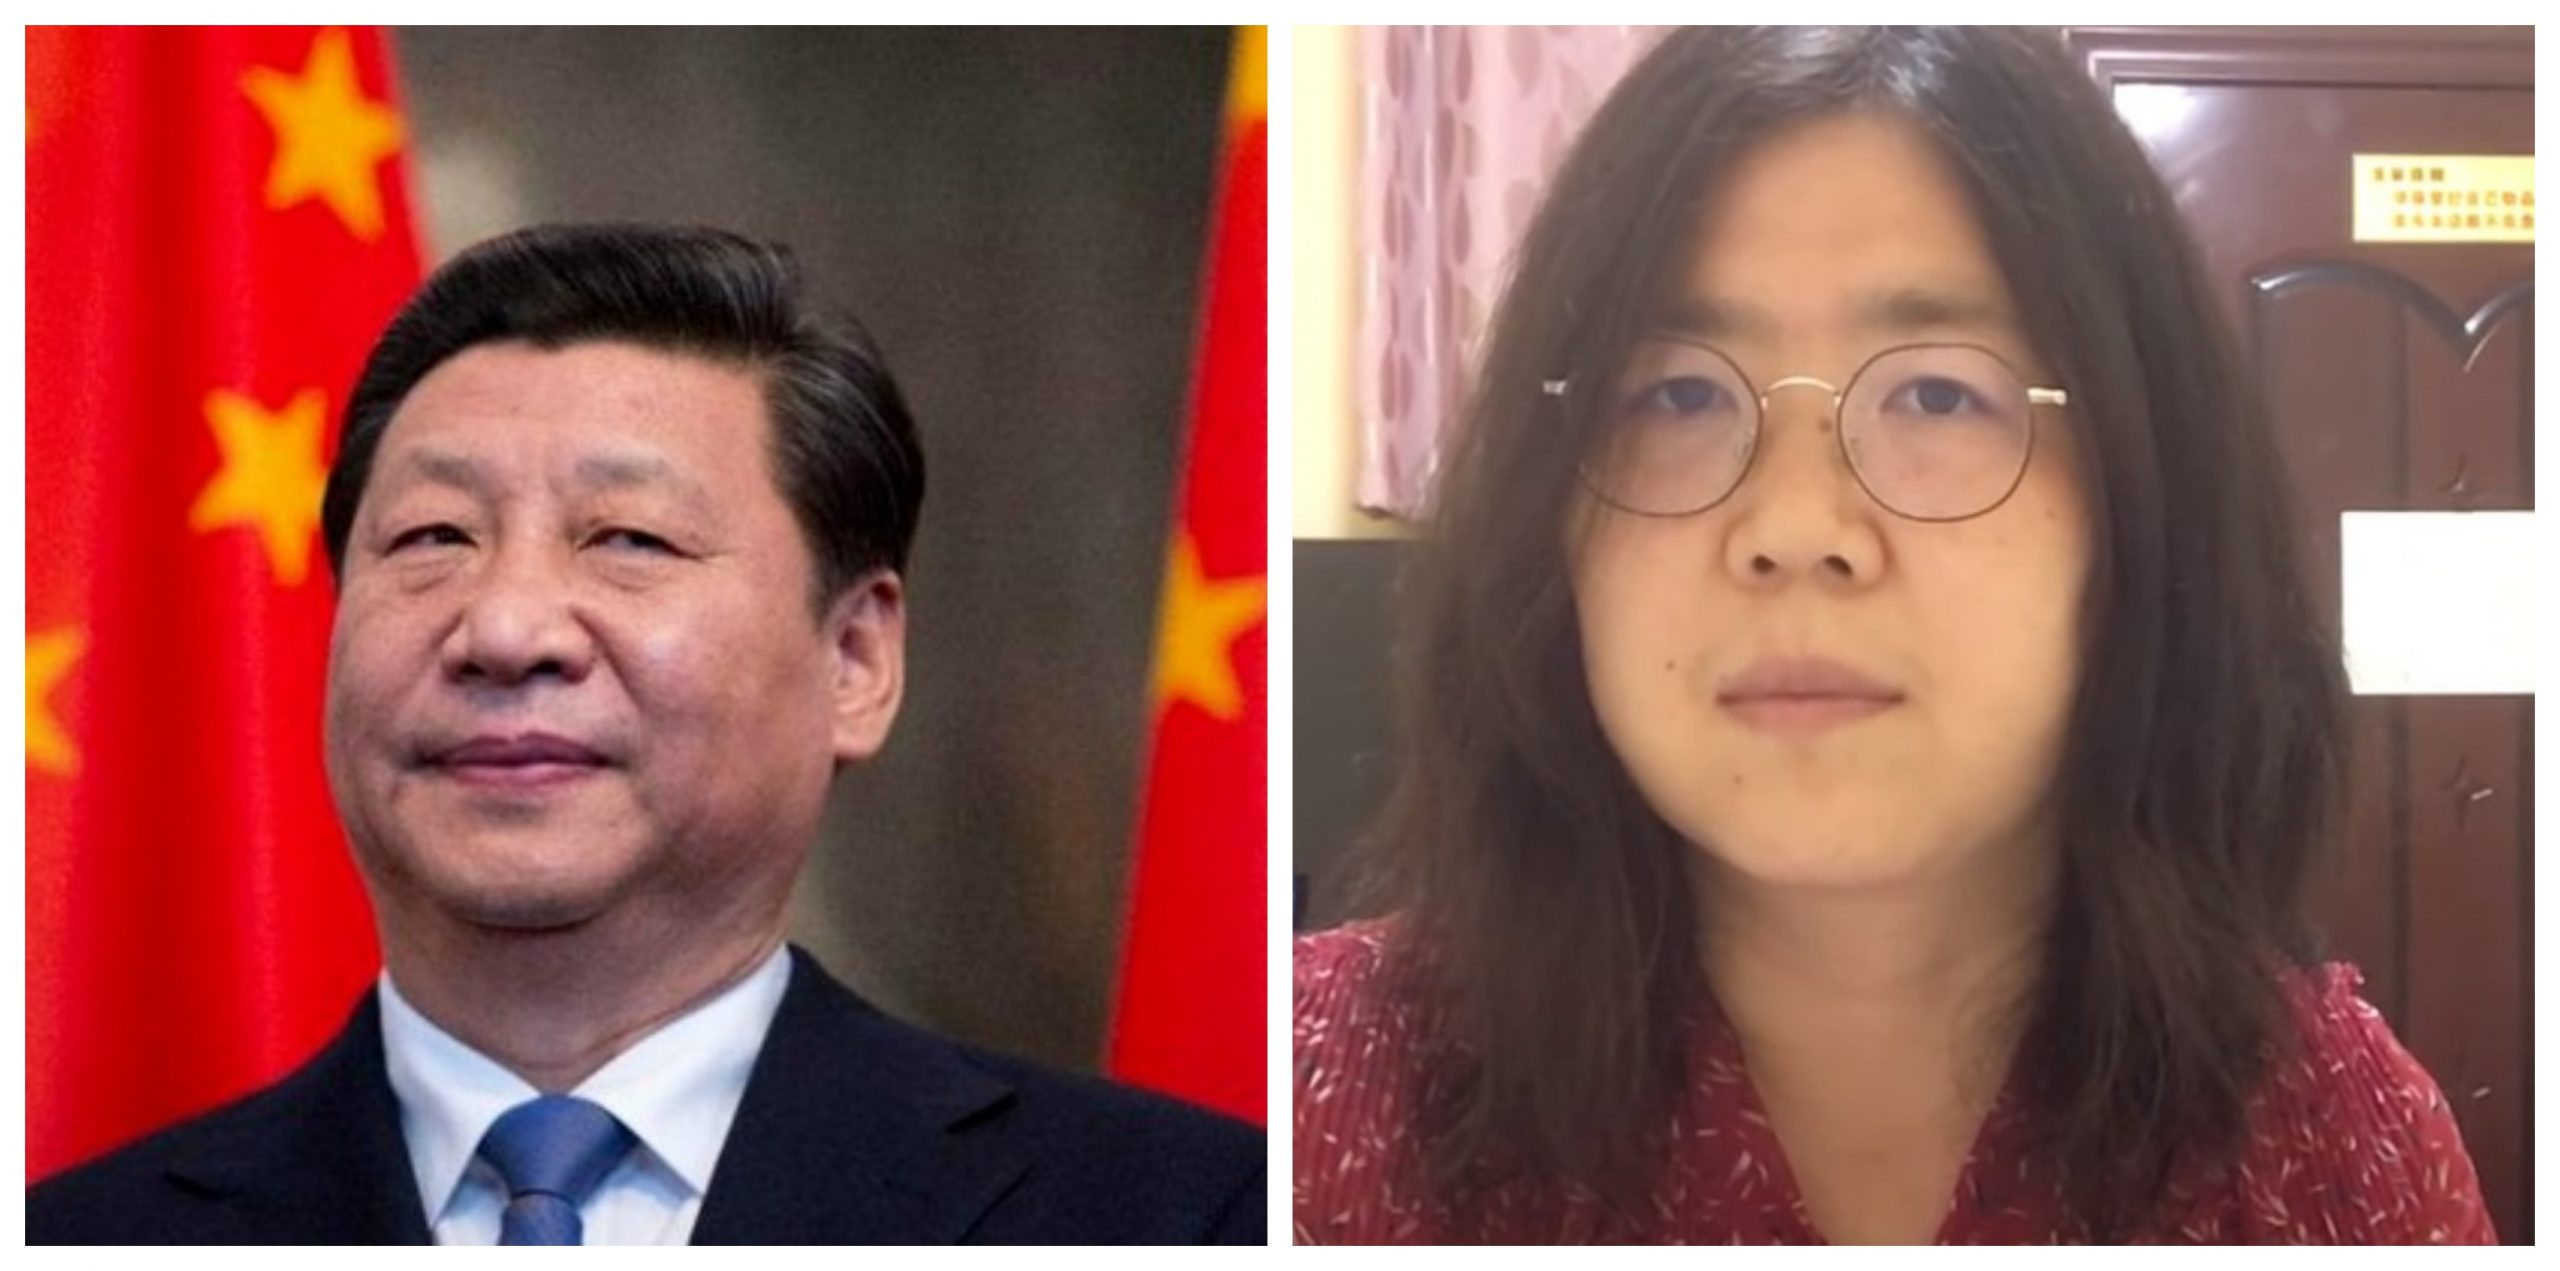 China: Journalist Zhang Zhan faces 5 years in prison for reporting on Covid